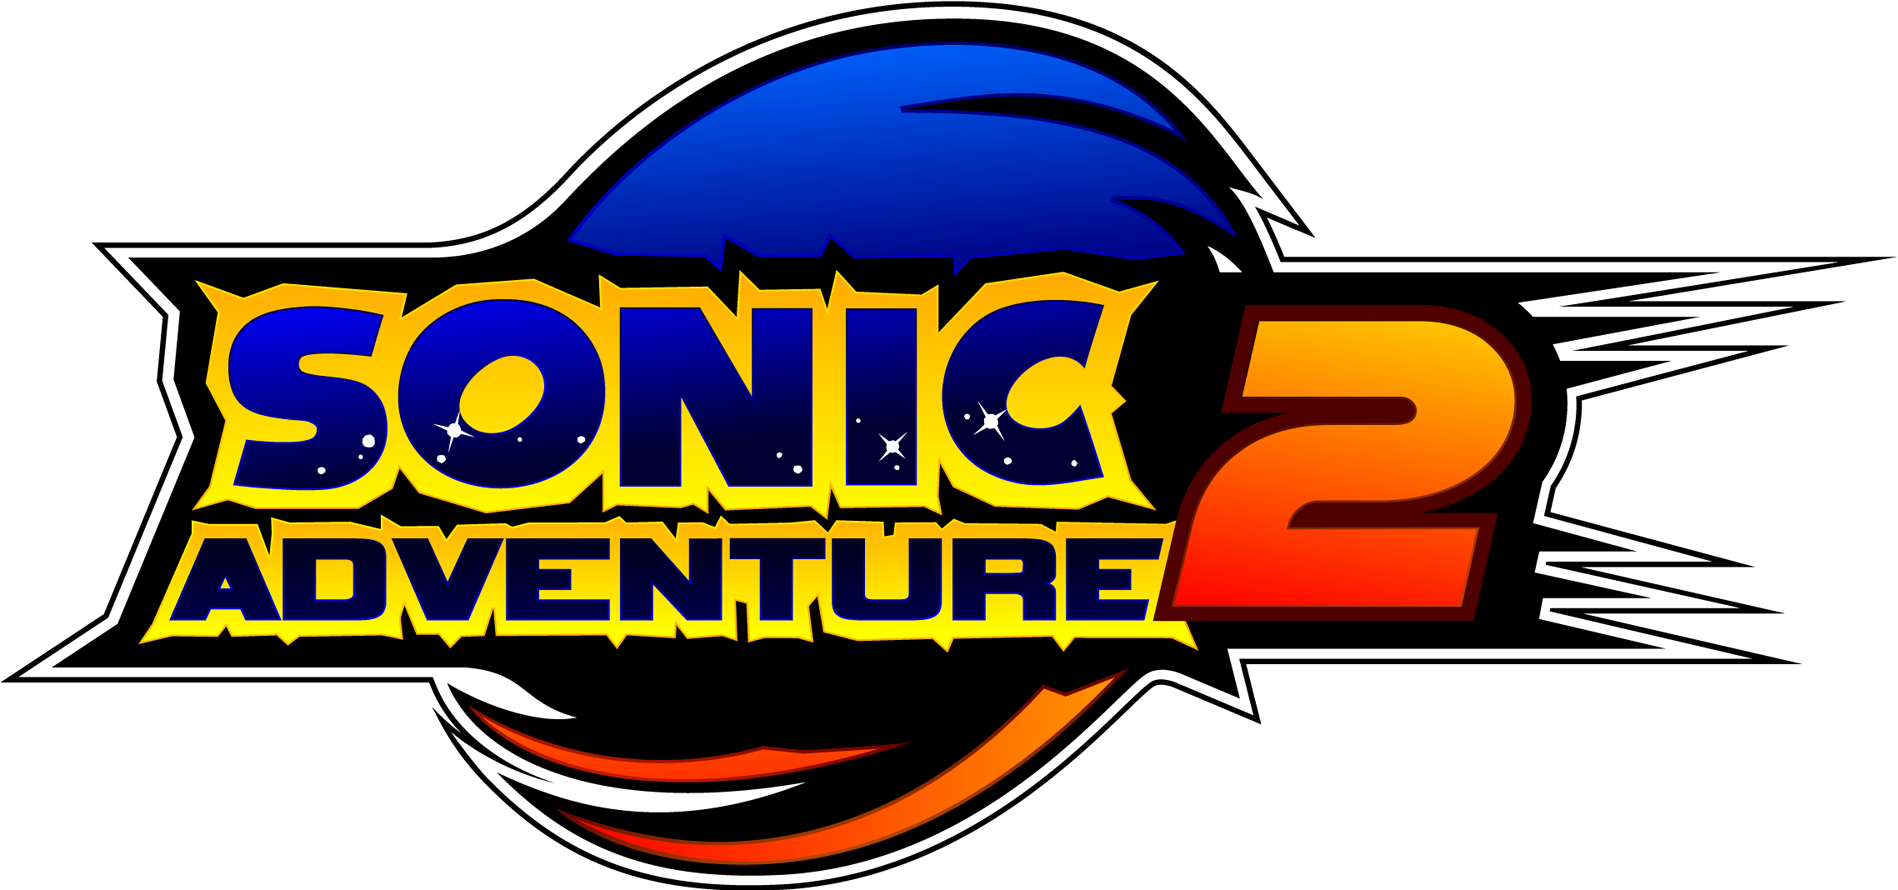 Sonic adventure 2 logo png. Image the misadventures of